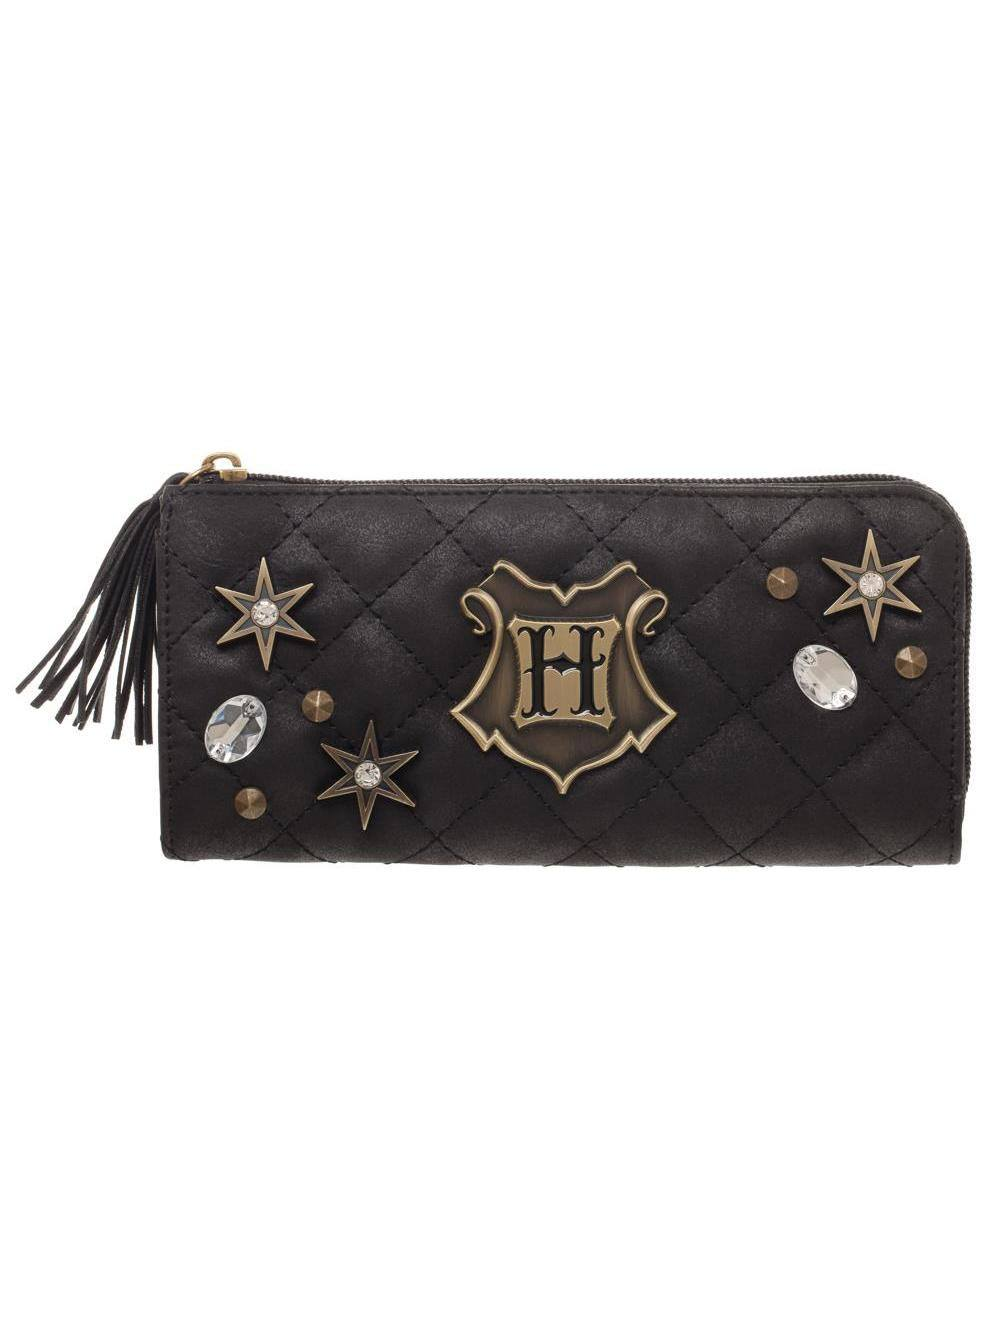 Harry Potter Ladies Wallet Back to Hogwarts